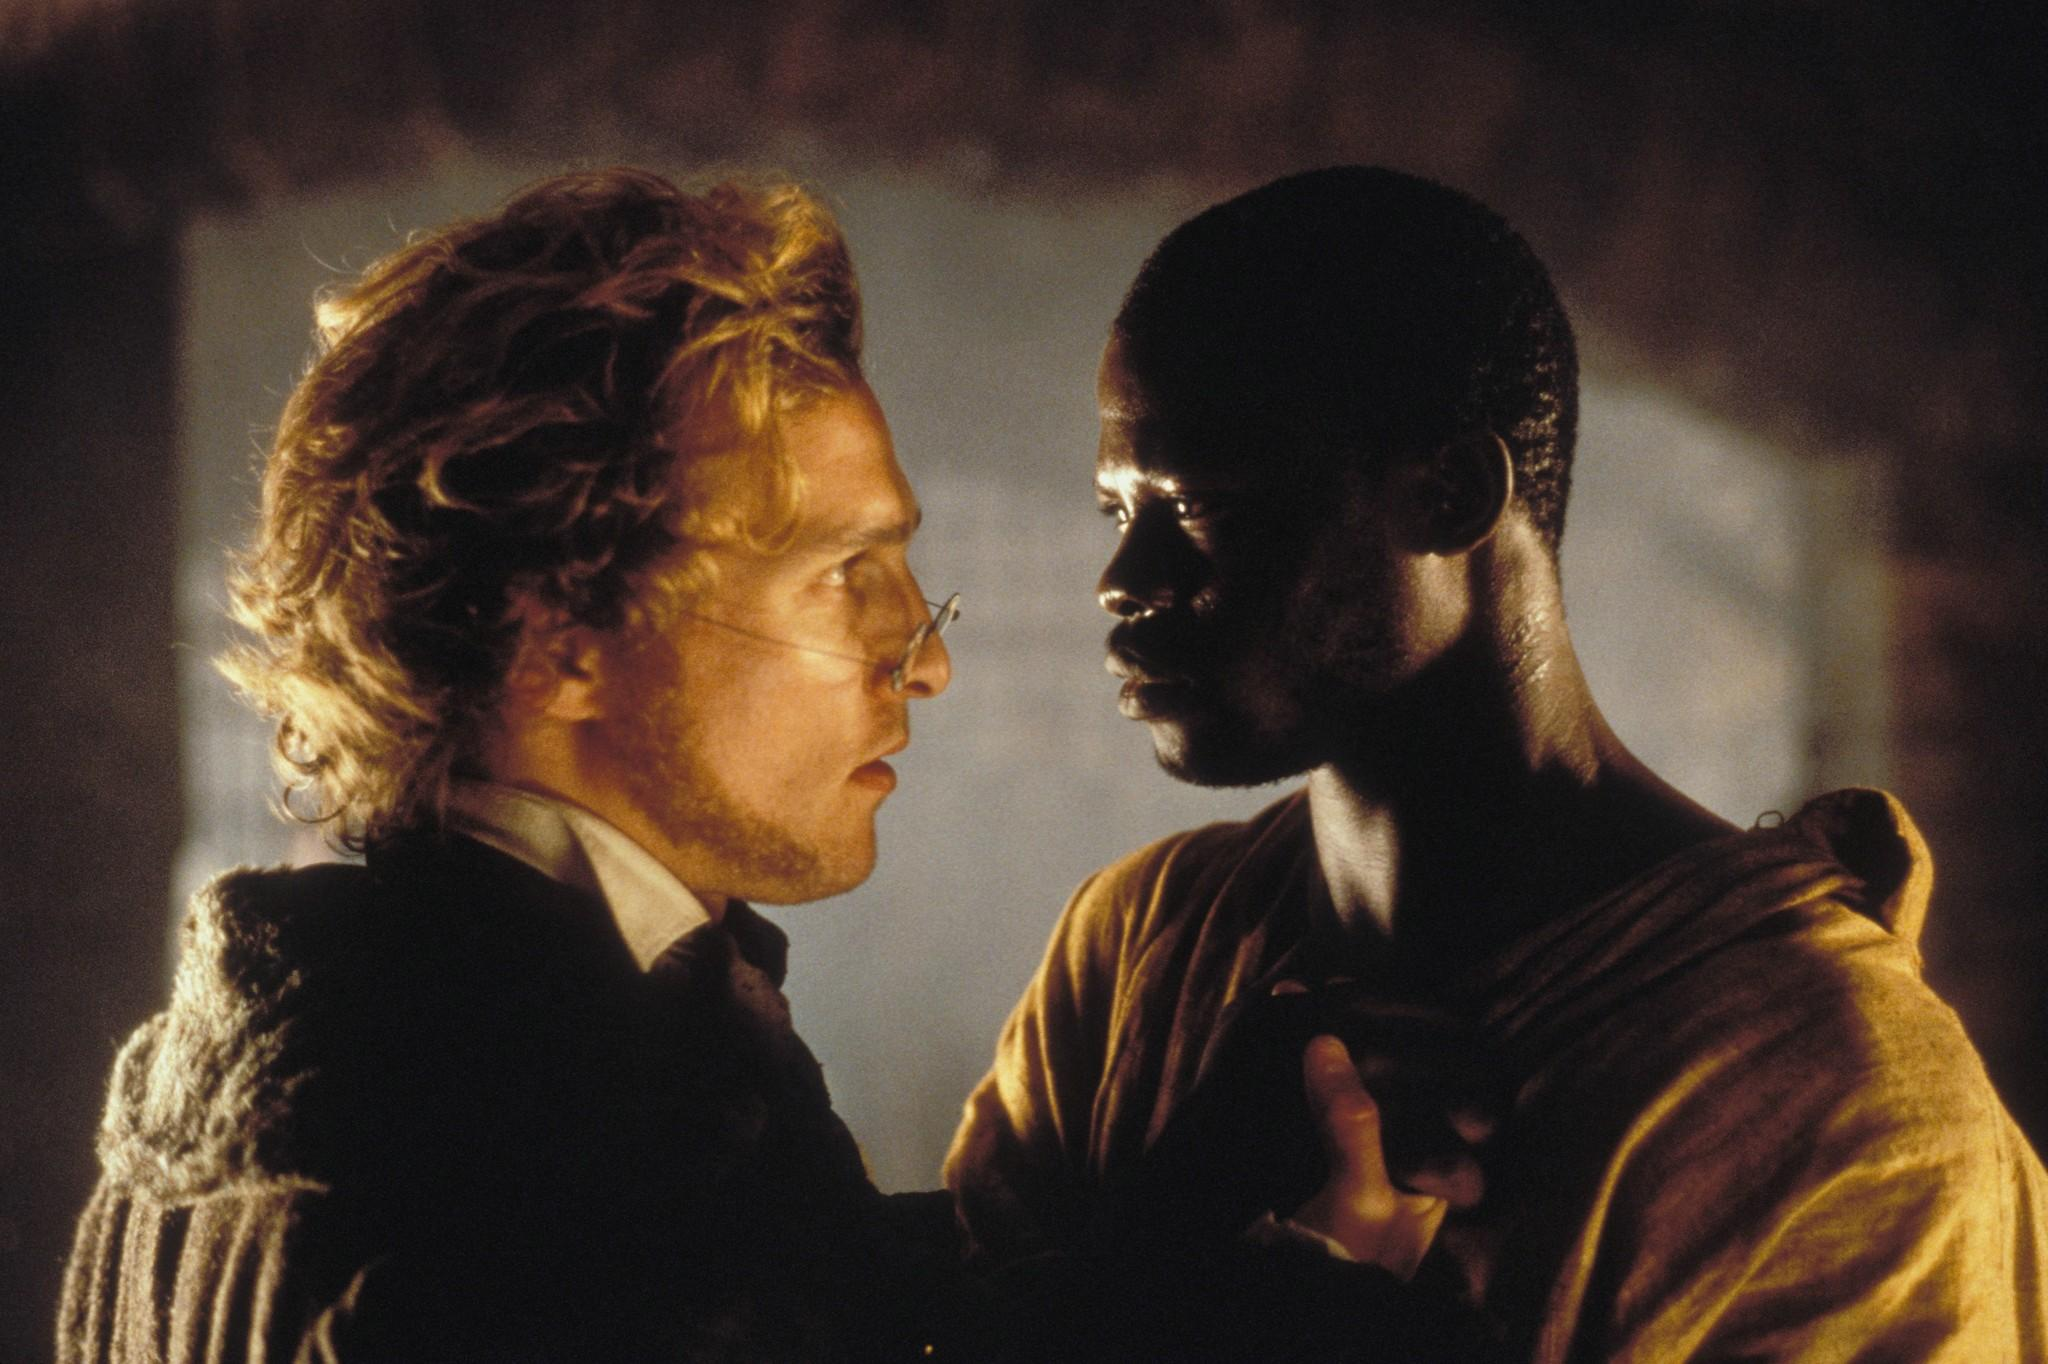 still-of-matthew-mcconaughey-and-djimon-hounsou-in-amistad-(1997)